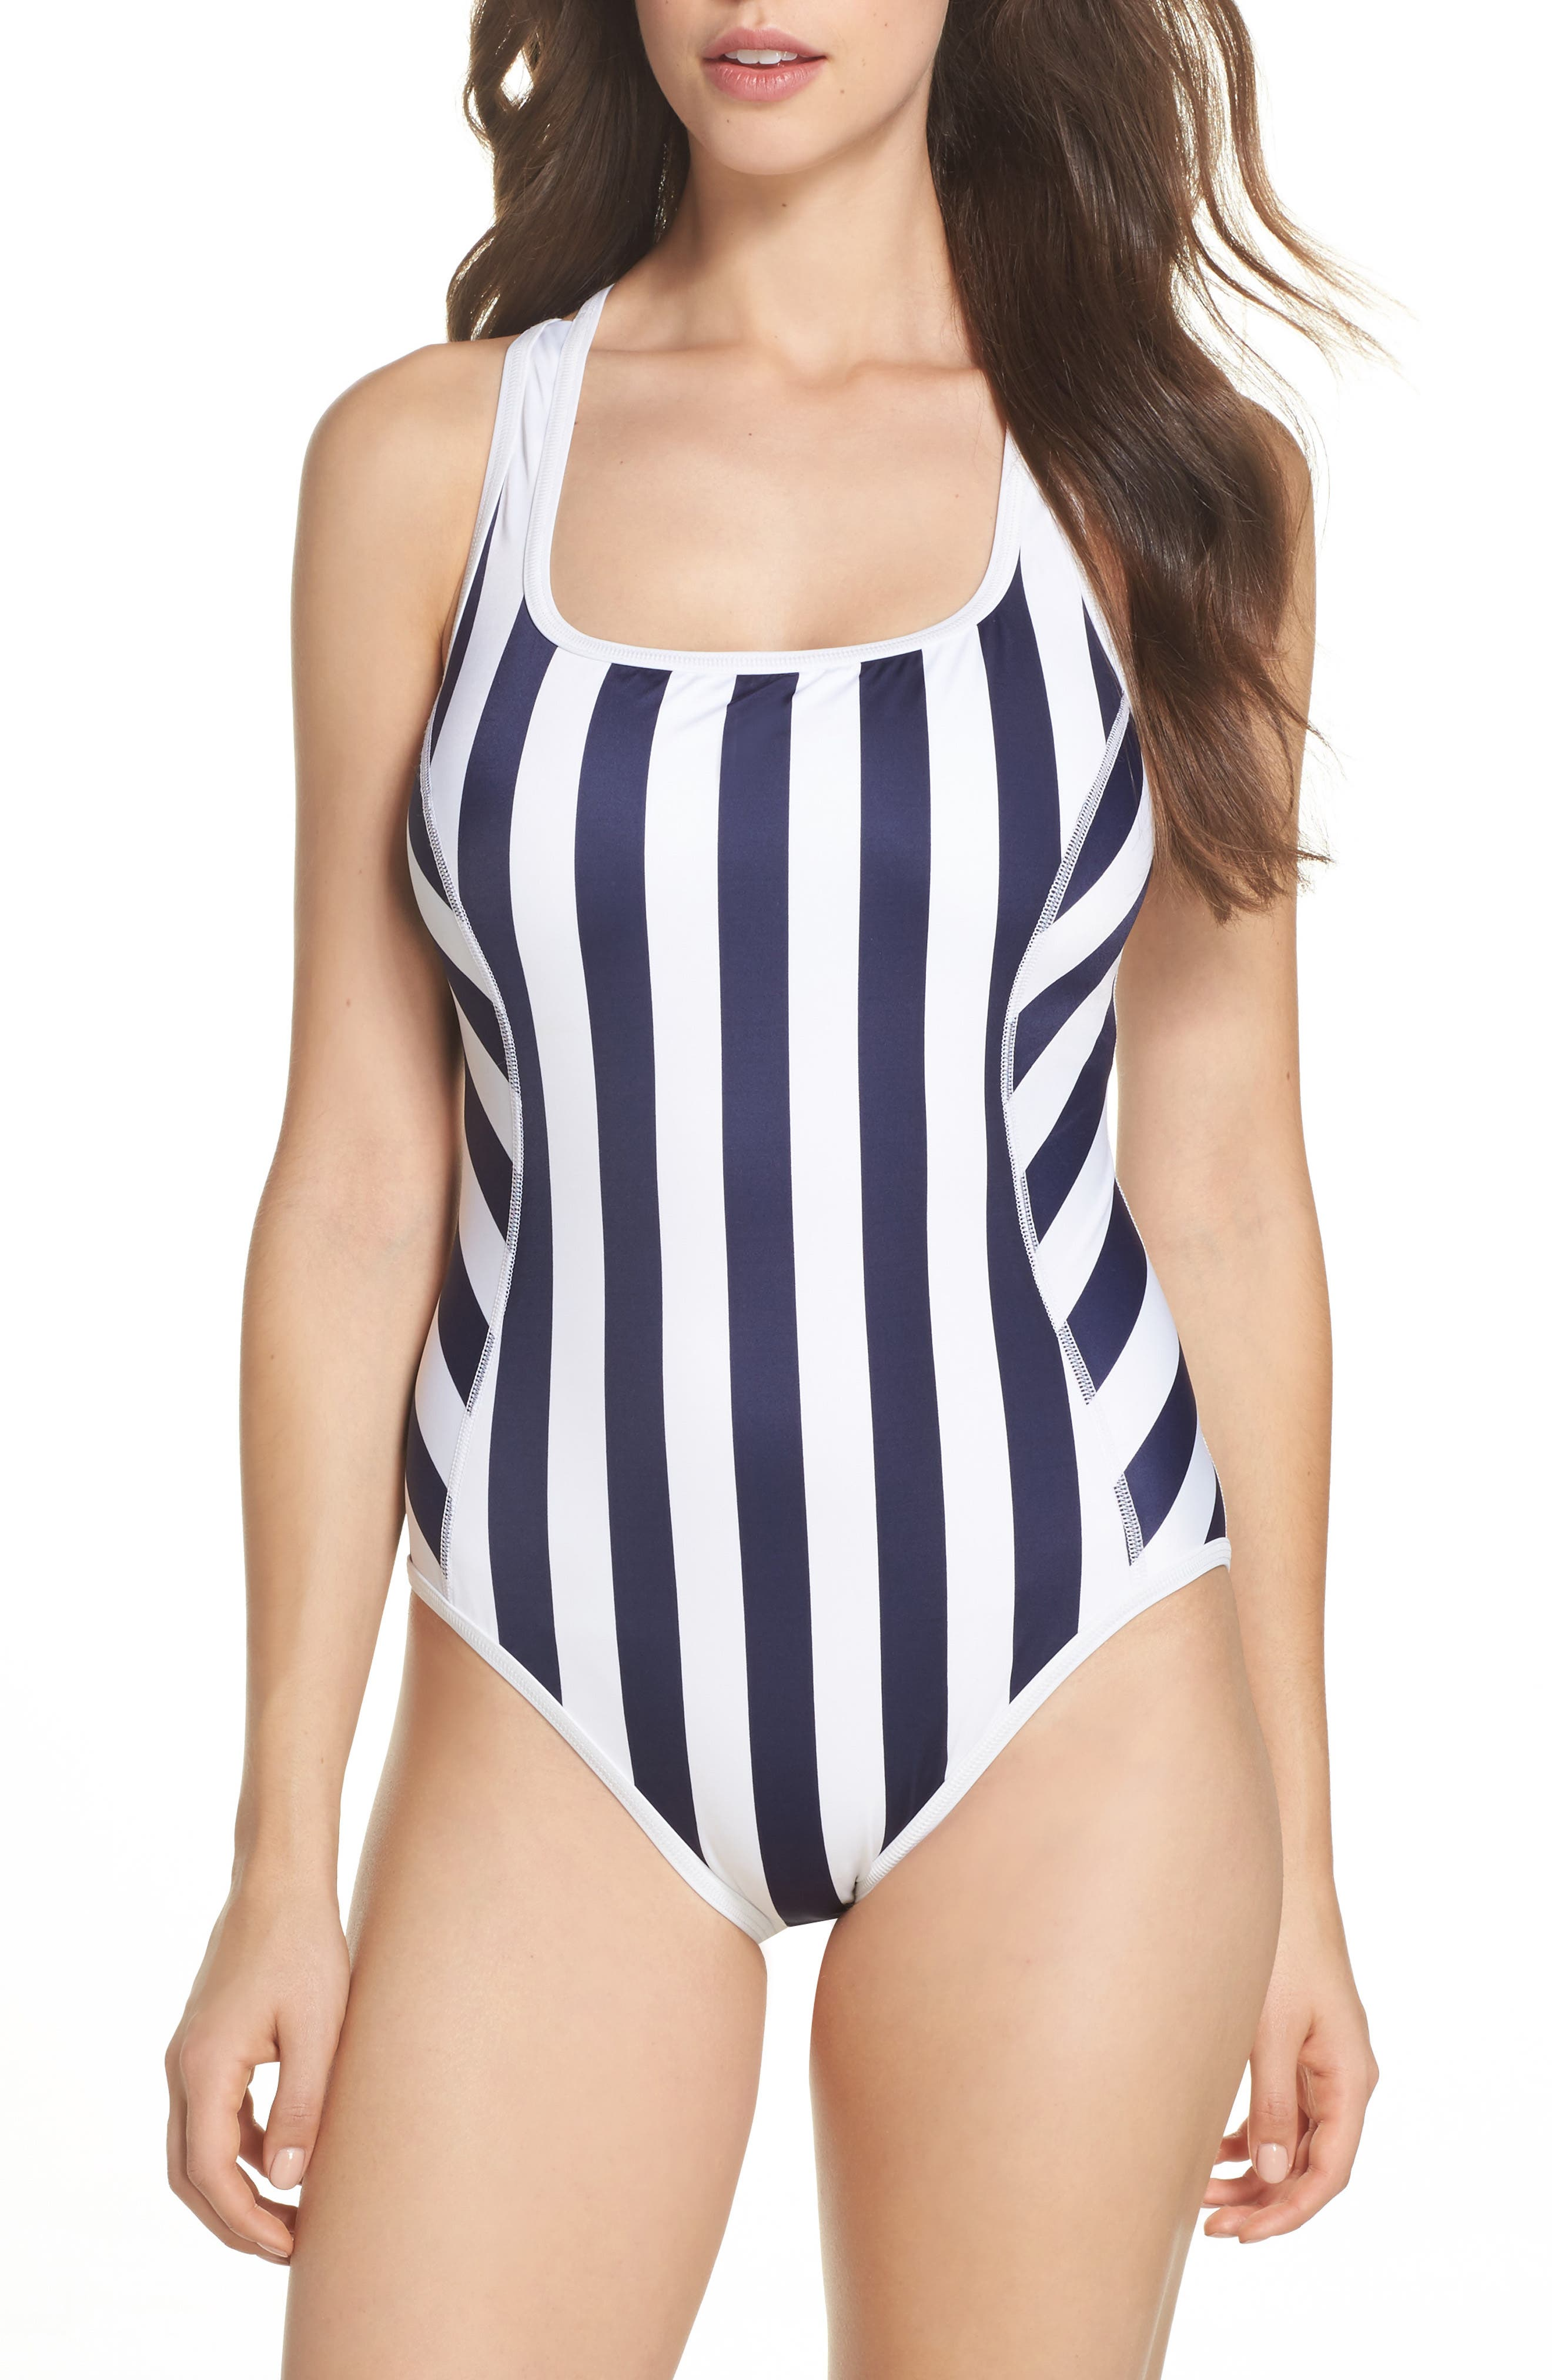 Island Active One-Piece Swimsuit,                             Main thumbnail 1, color,                             Mare Navy